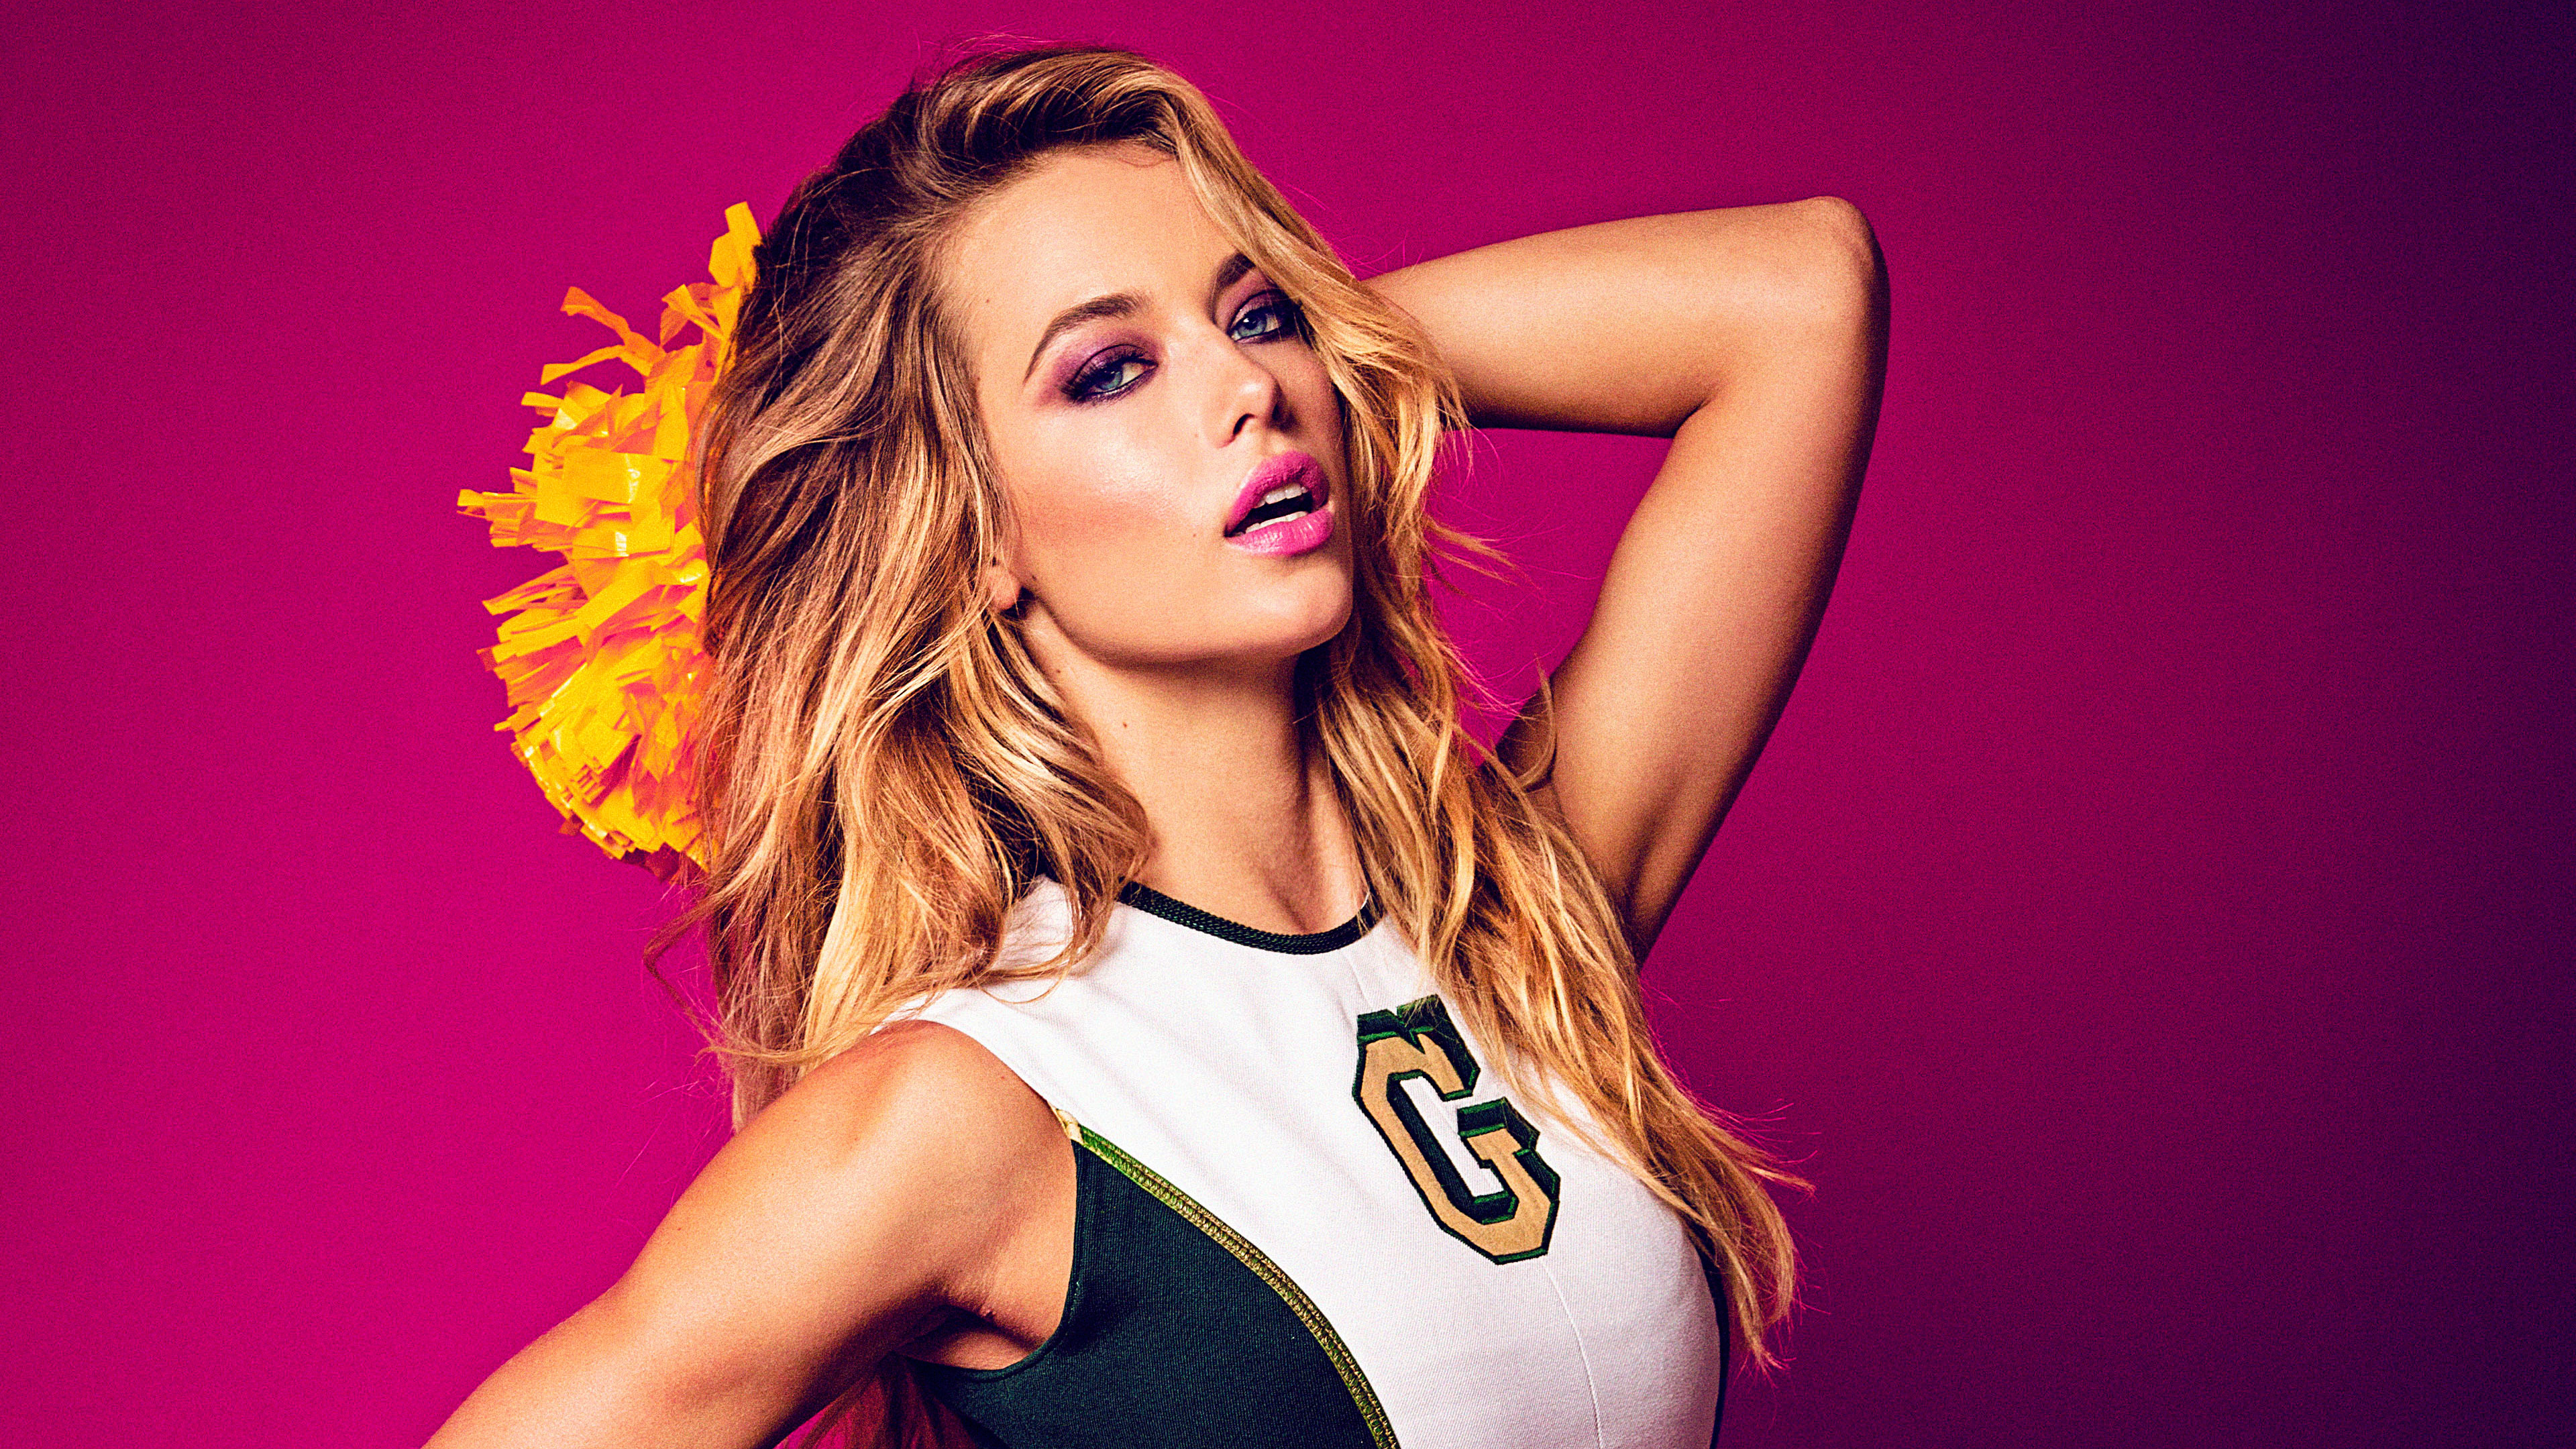 hannah ferguson 4k 1536951957 - Hannah Ferguson 4k - hd-wallpapers, hannah ferguson wallpapers, girls wallpapers, celebrities wallpapers, 4k-wallpapers